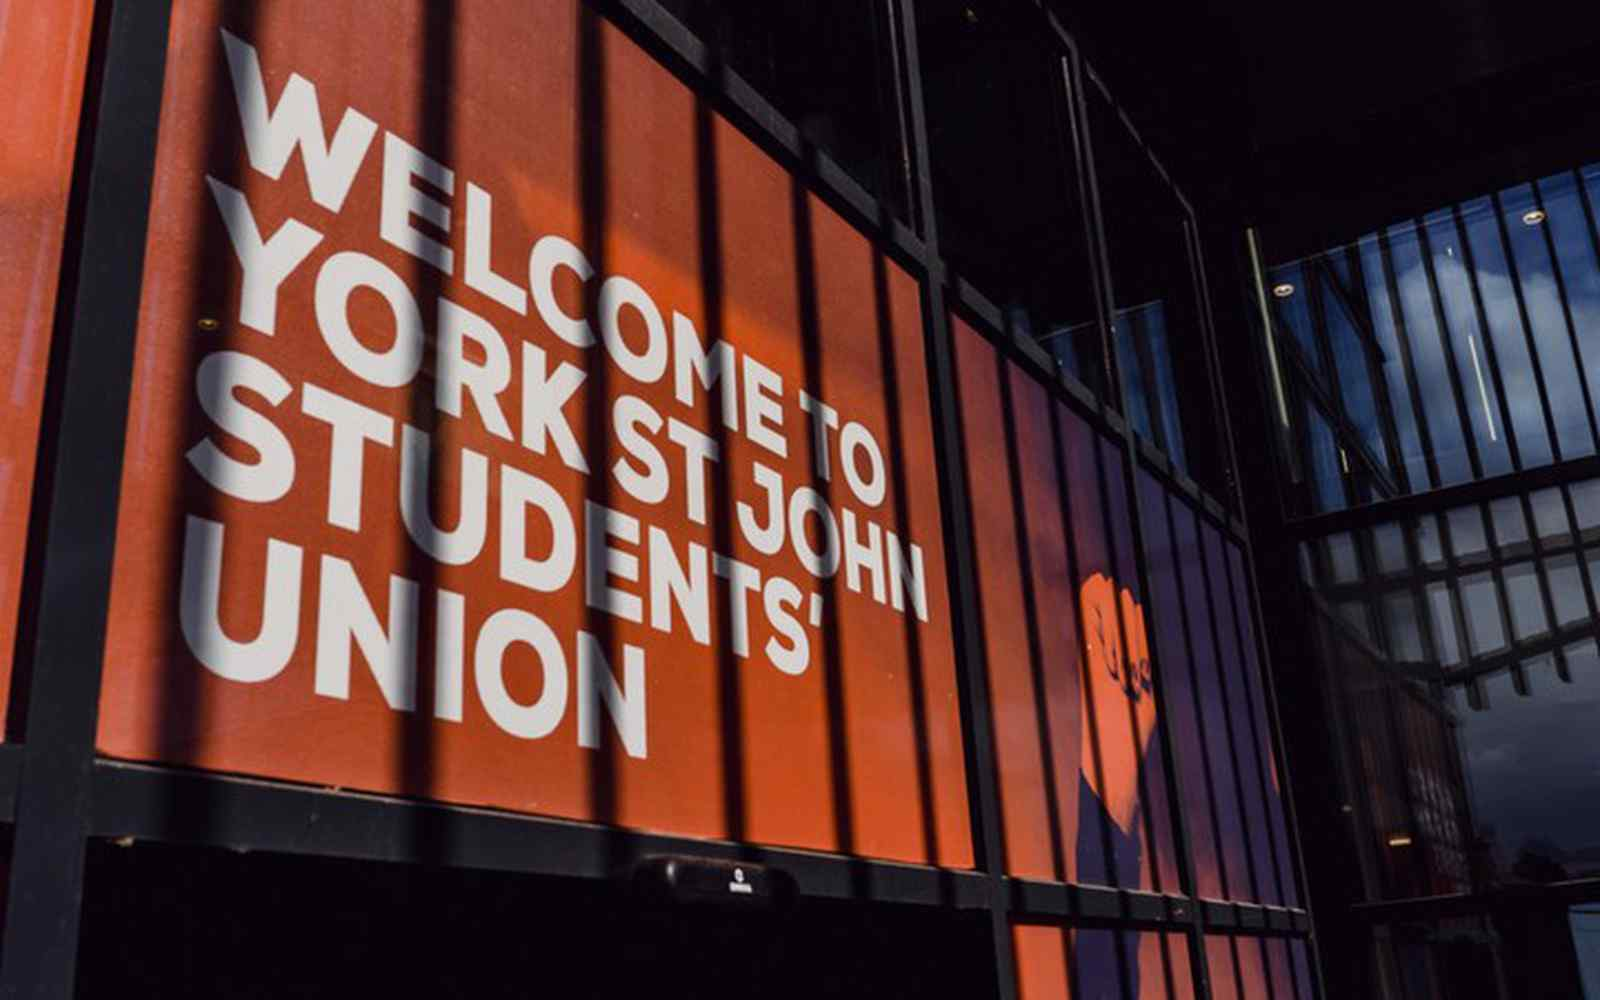 A close up of a red and white sign for York St John SU